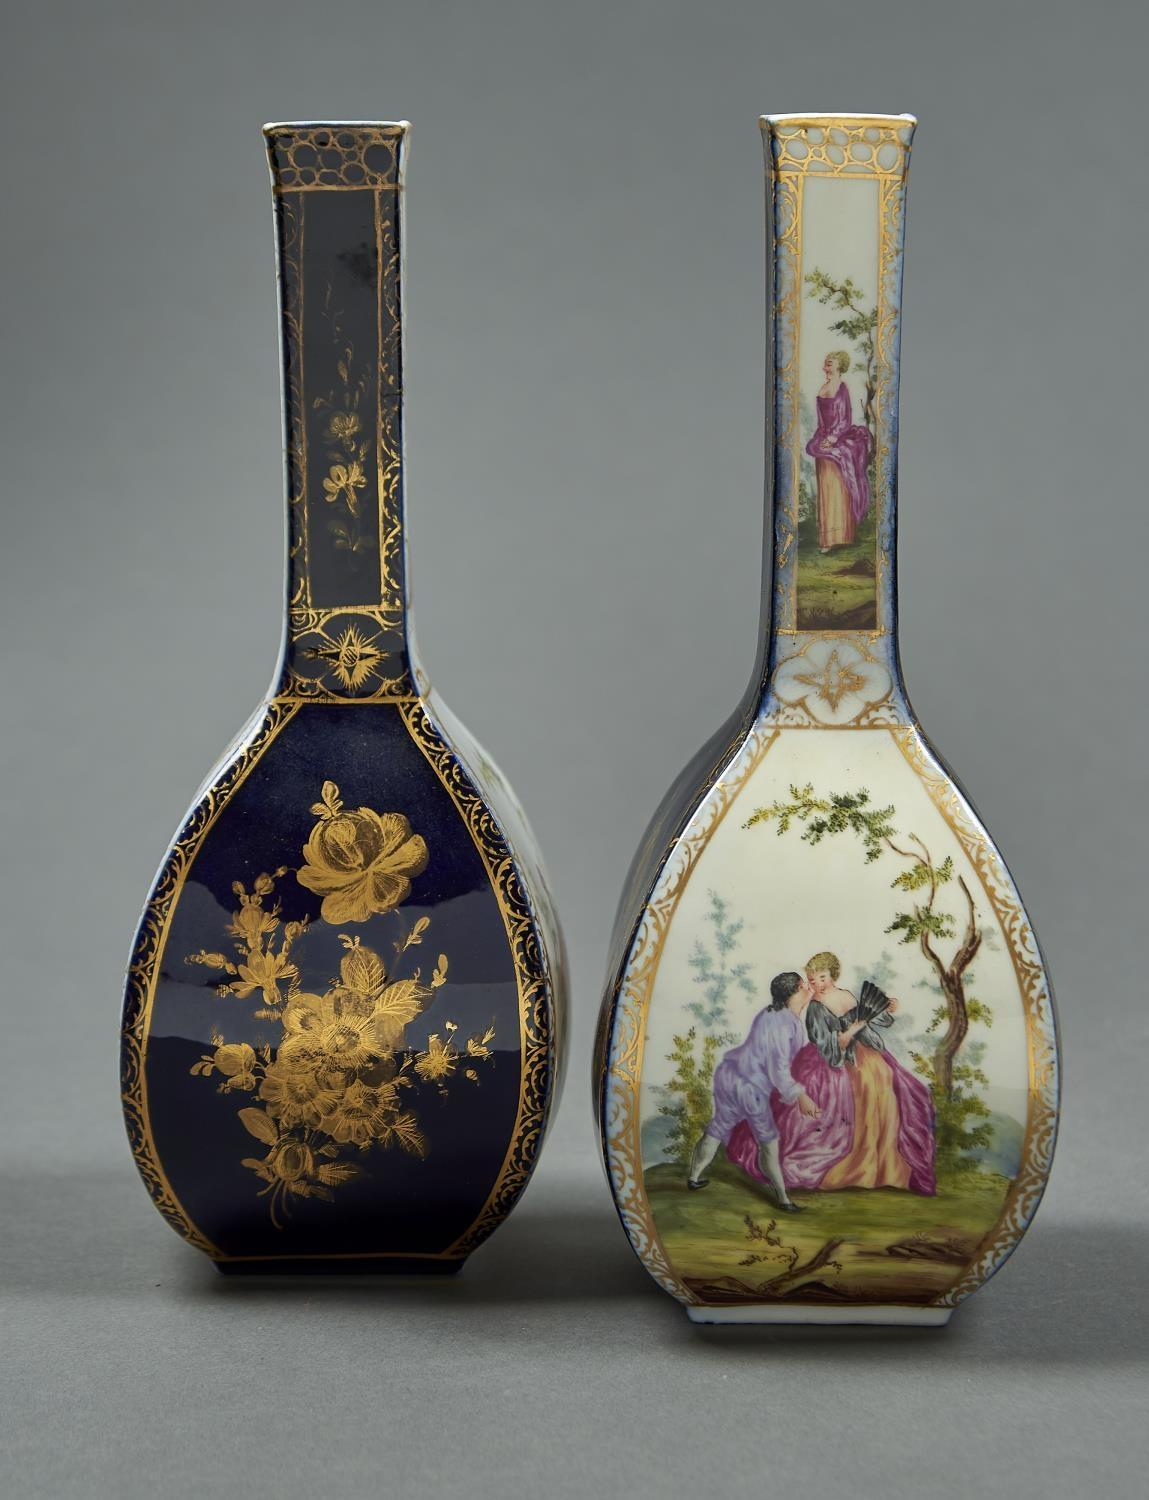 A PAIR OF GERMAN PORCELAIN BOTTLE SHAPED VASES, EARLY 20TH C, OF SQUARE SECTION, PAINTED WITH 18TH C